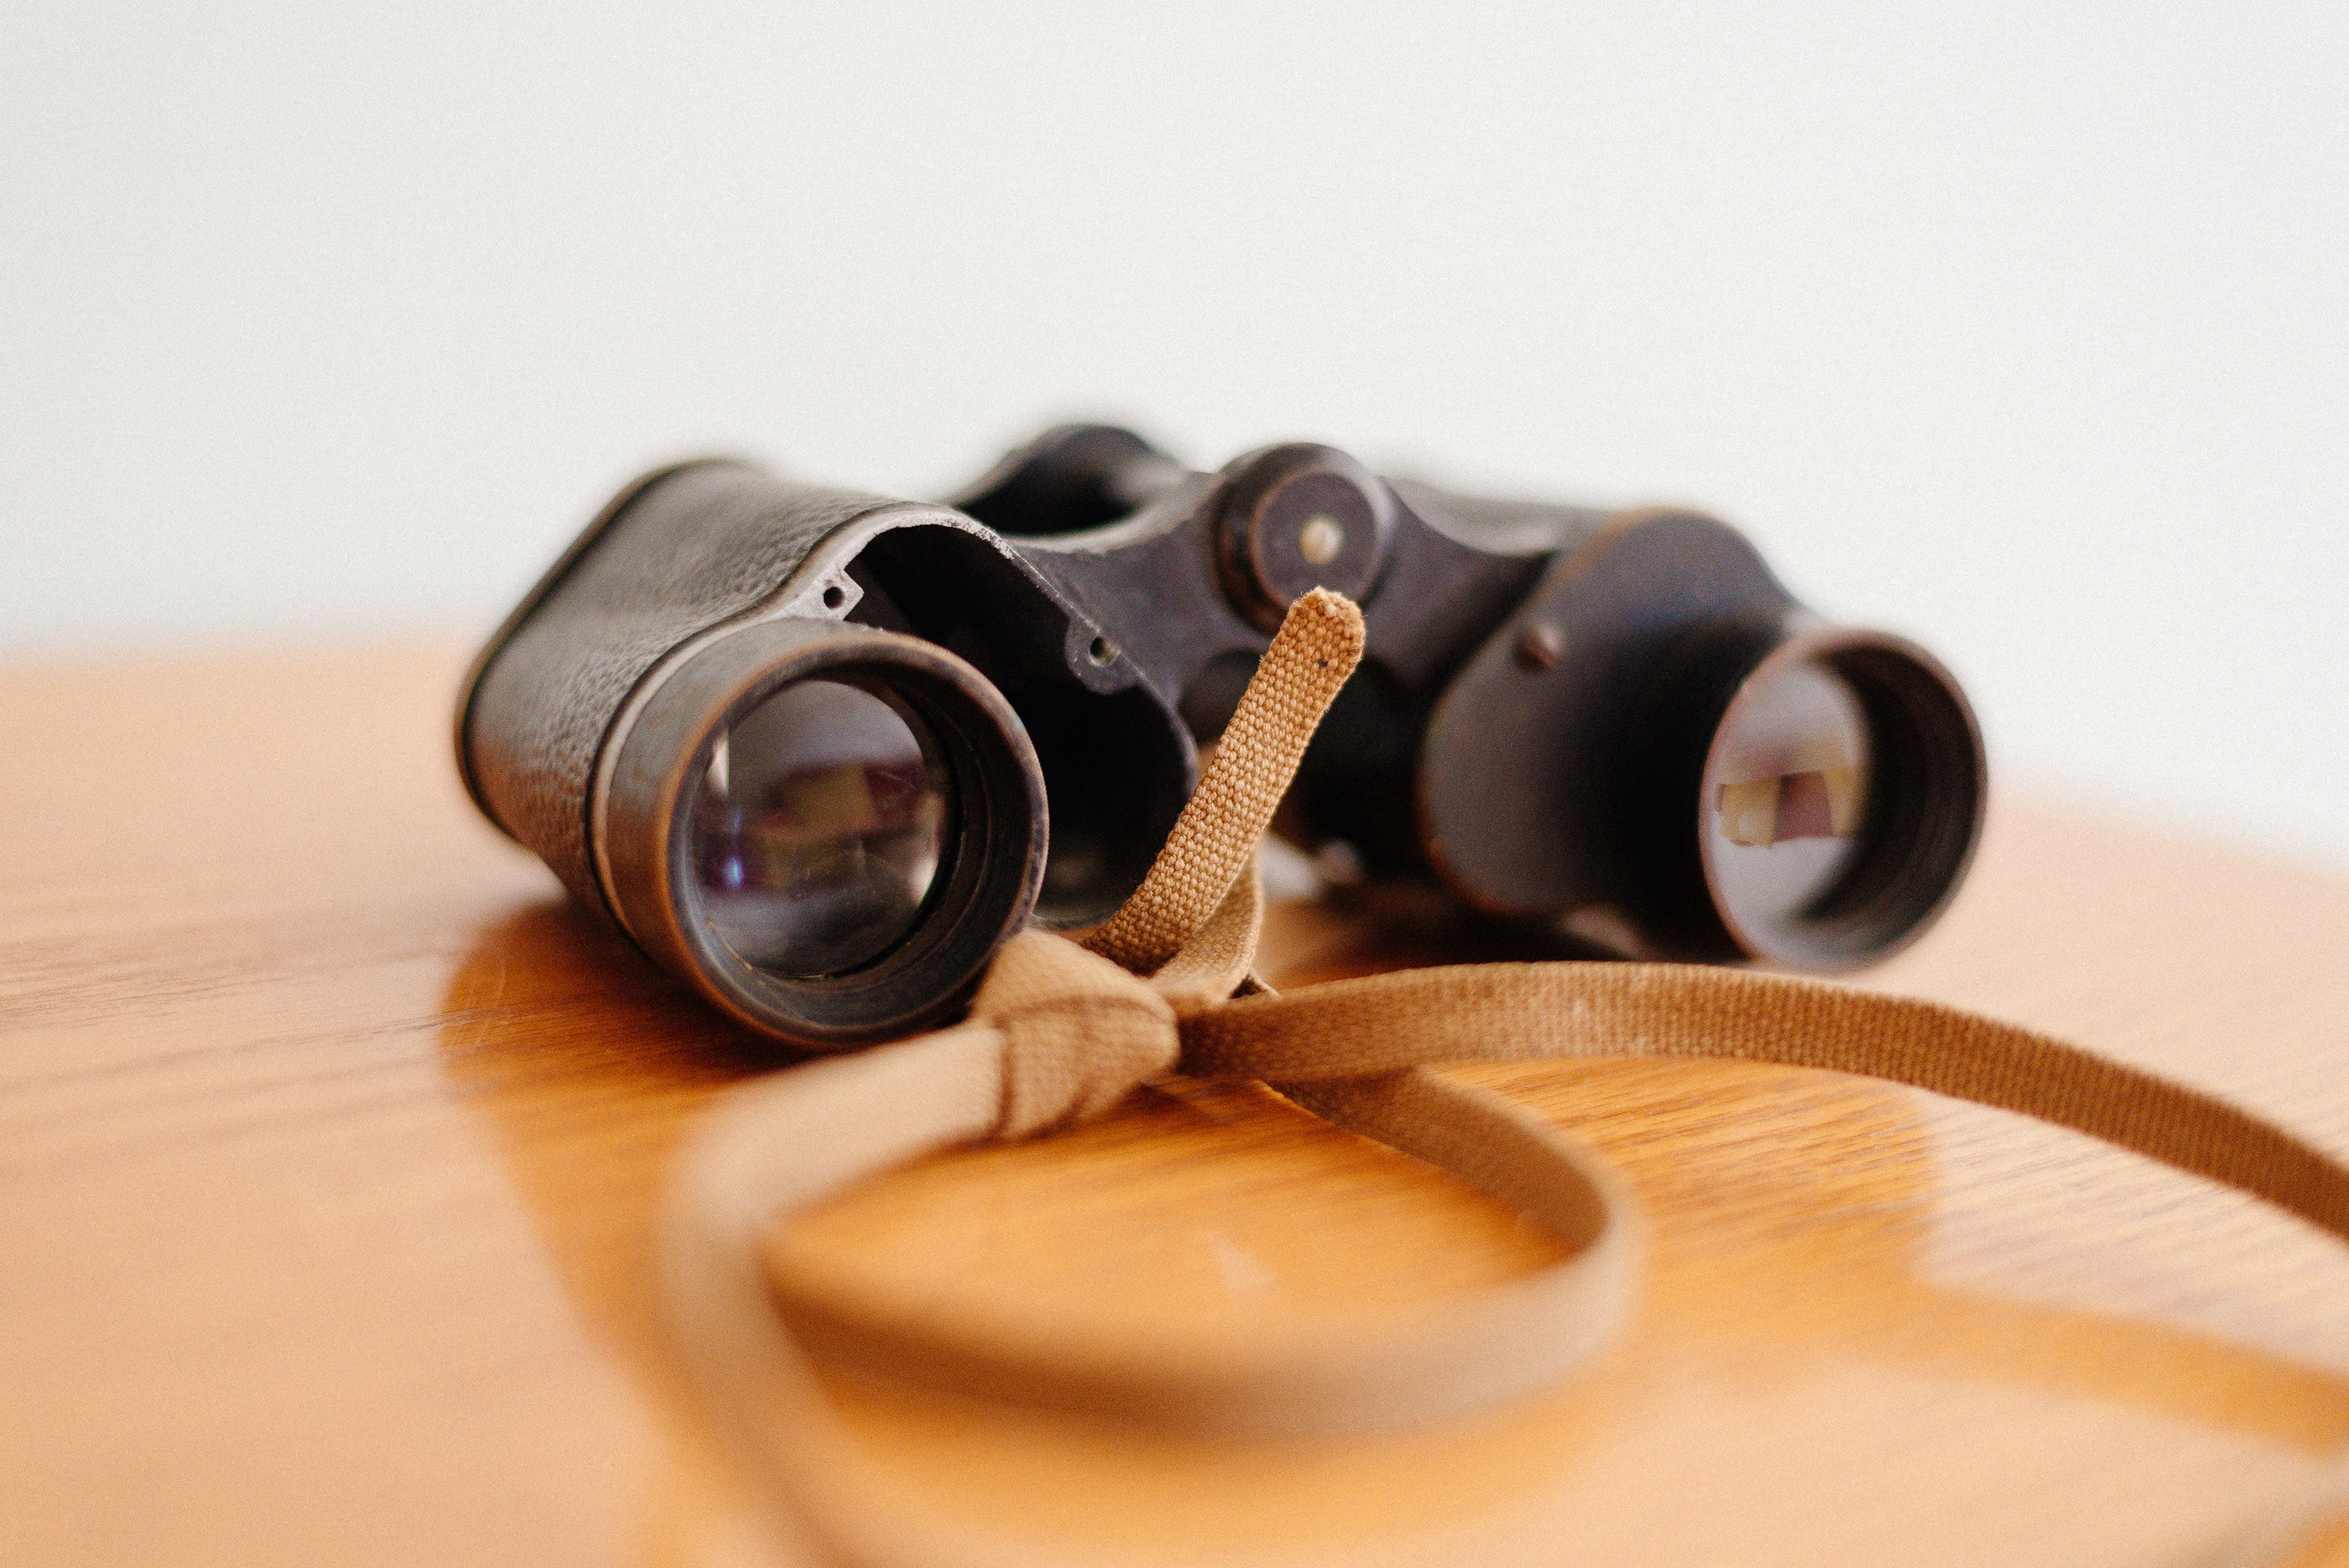 closeup photo of binoculars on brown wooden surface